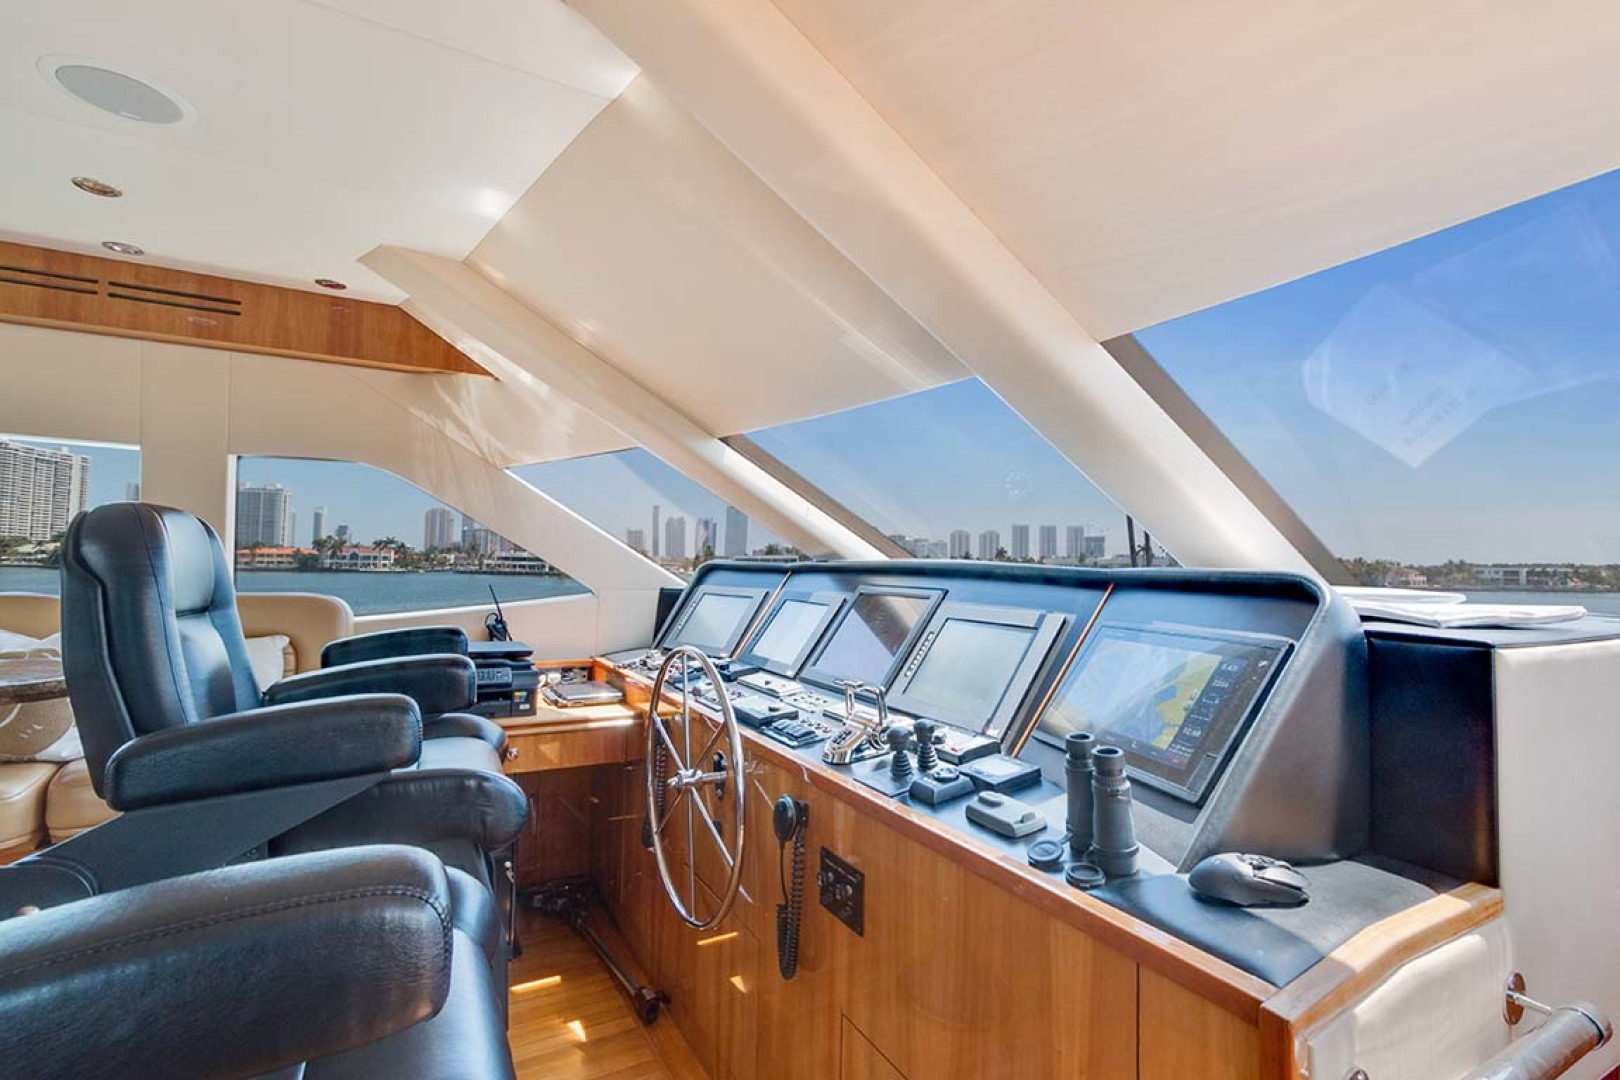 Hatteras-80 Motor Yacht 2007-Pneuma Ocean Reef-Florida-United States-Helm and Electronics-1092660 | Thumbnail